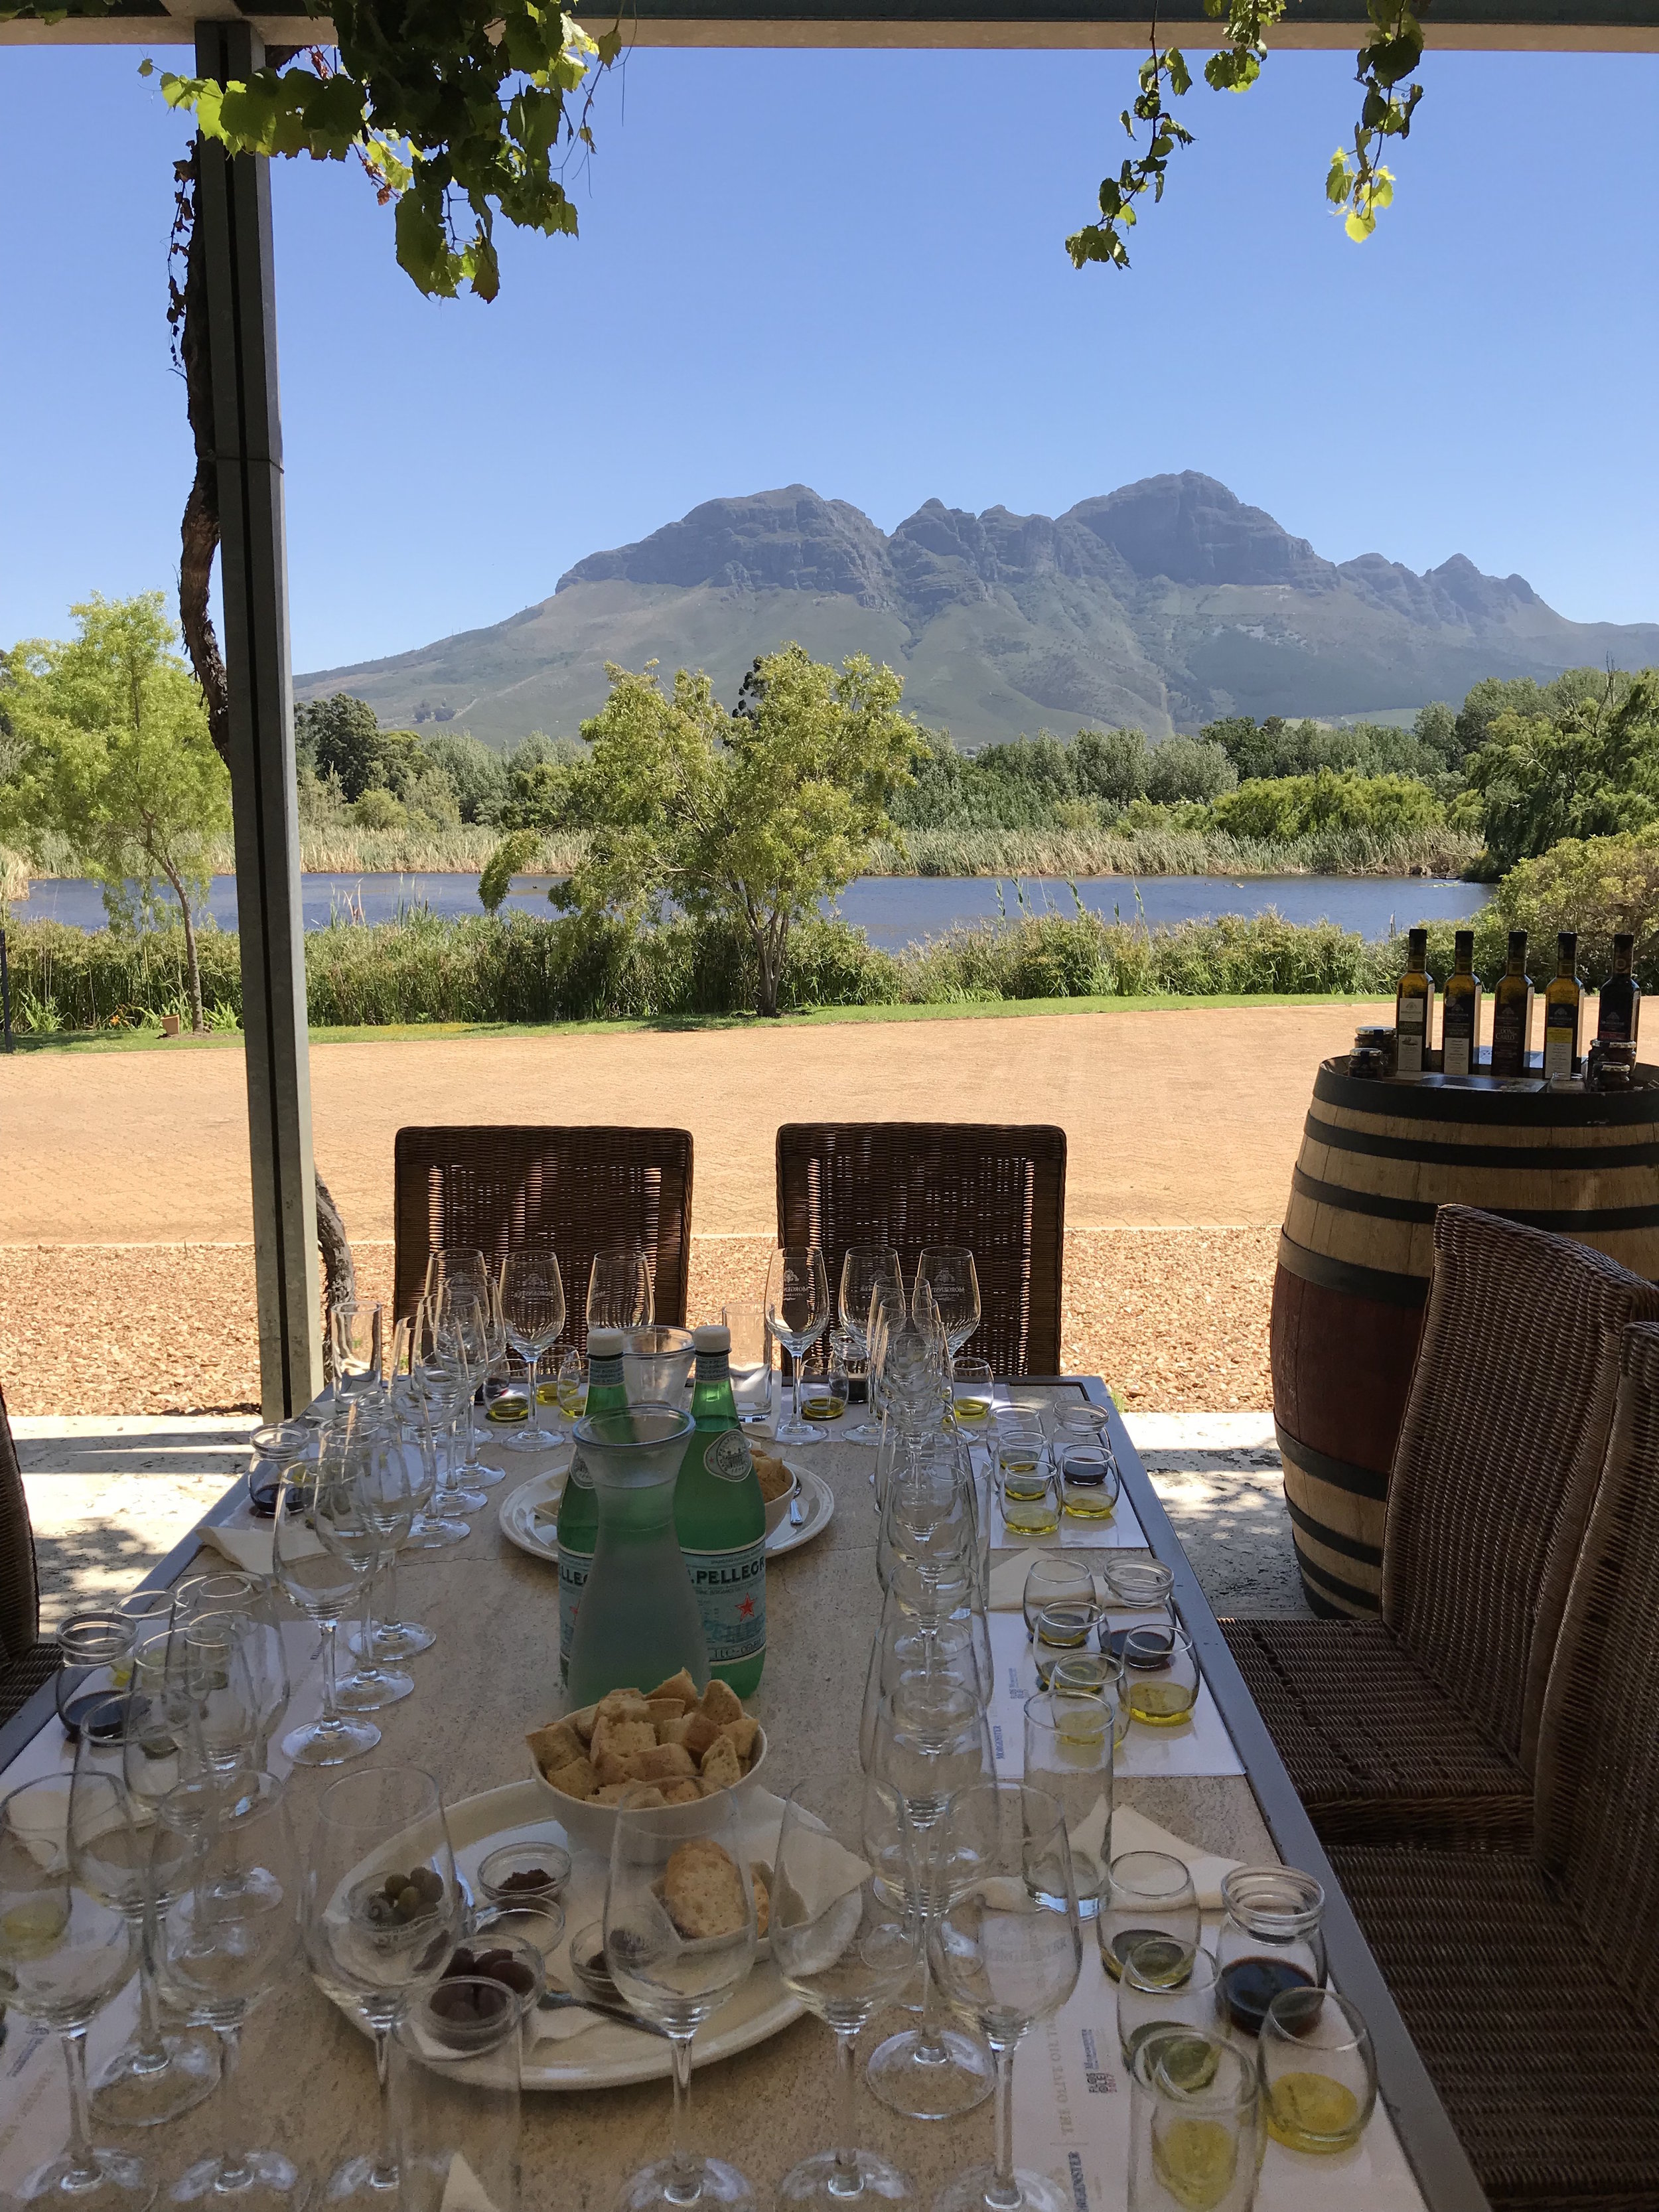 Olive Oil Tasting in South Africa Wine Country at  Morgenster Stellenbosch